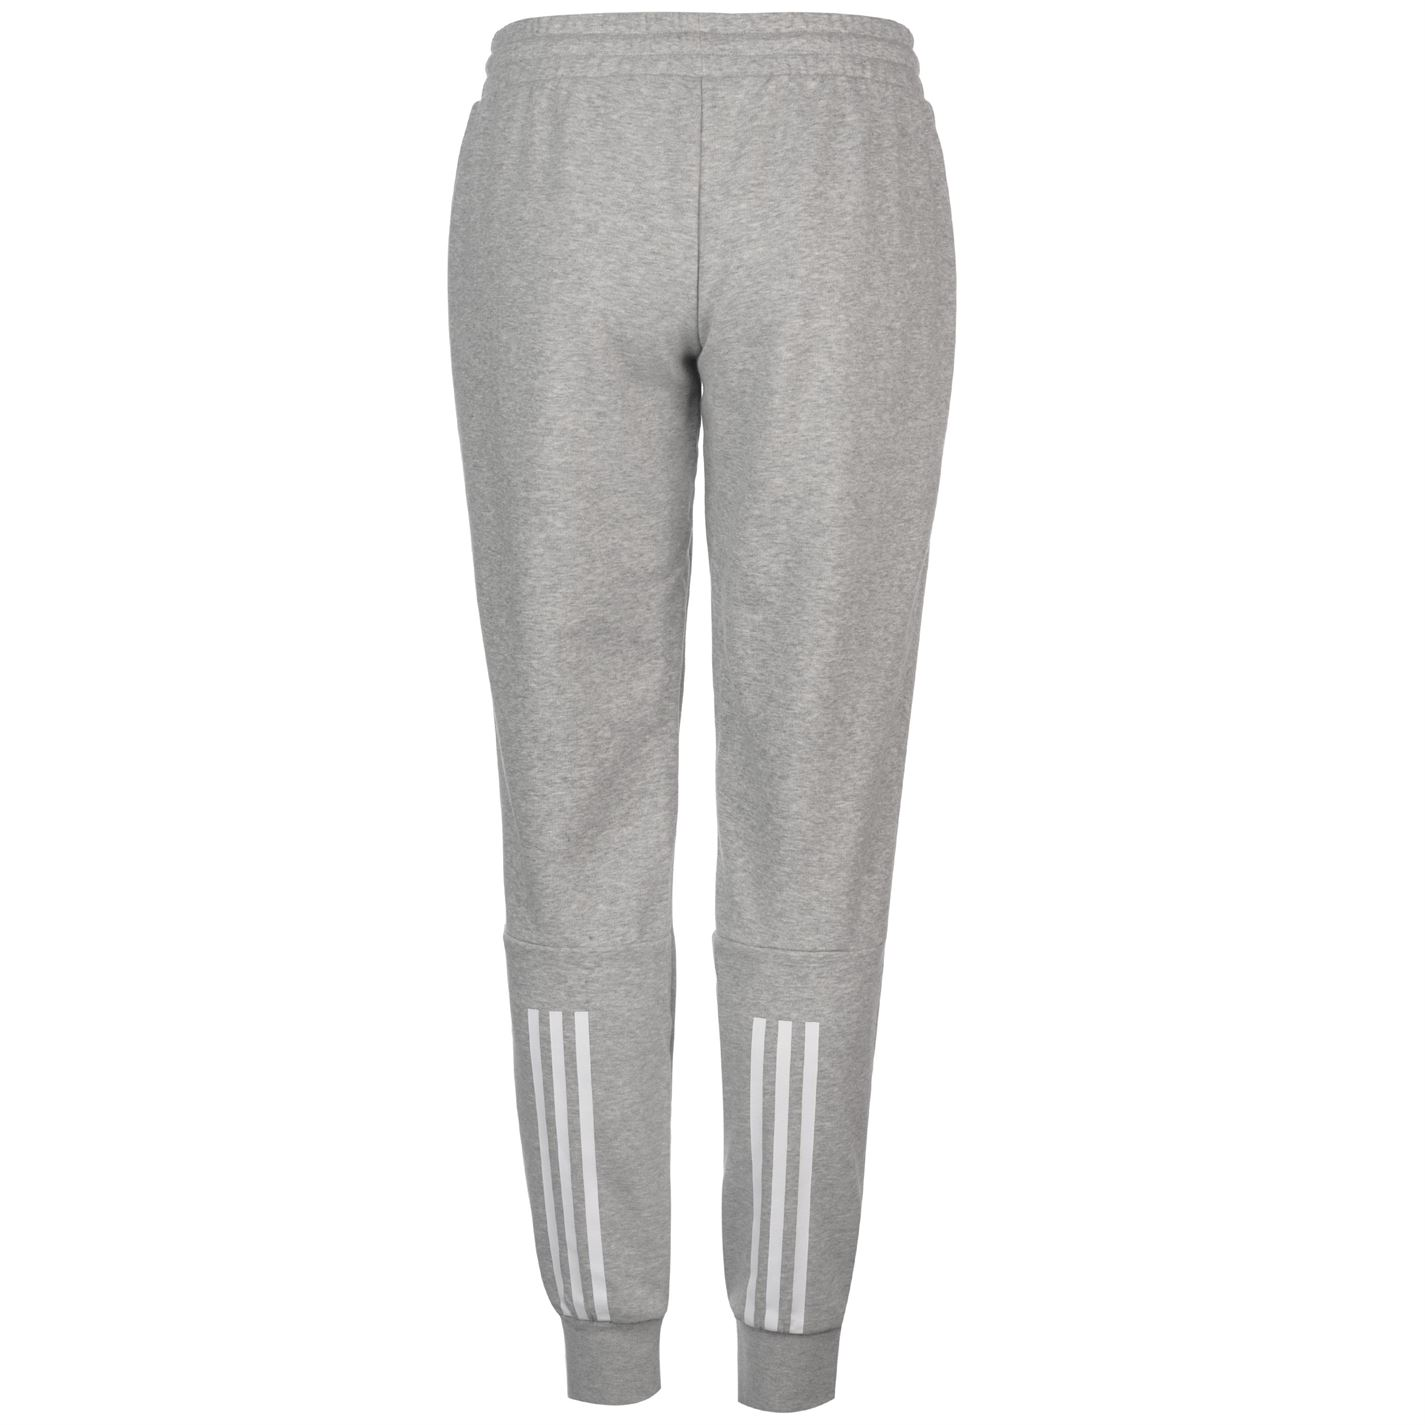 68a1e92f835 Details about adidas SID Sweatpants Ladies Fleece Jogging Bottoms Trousers  Pants Zip